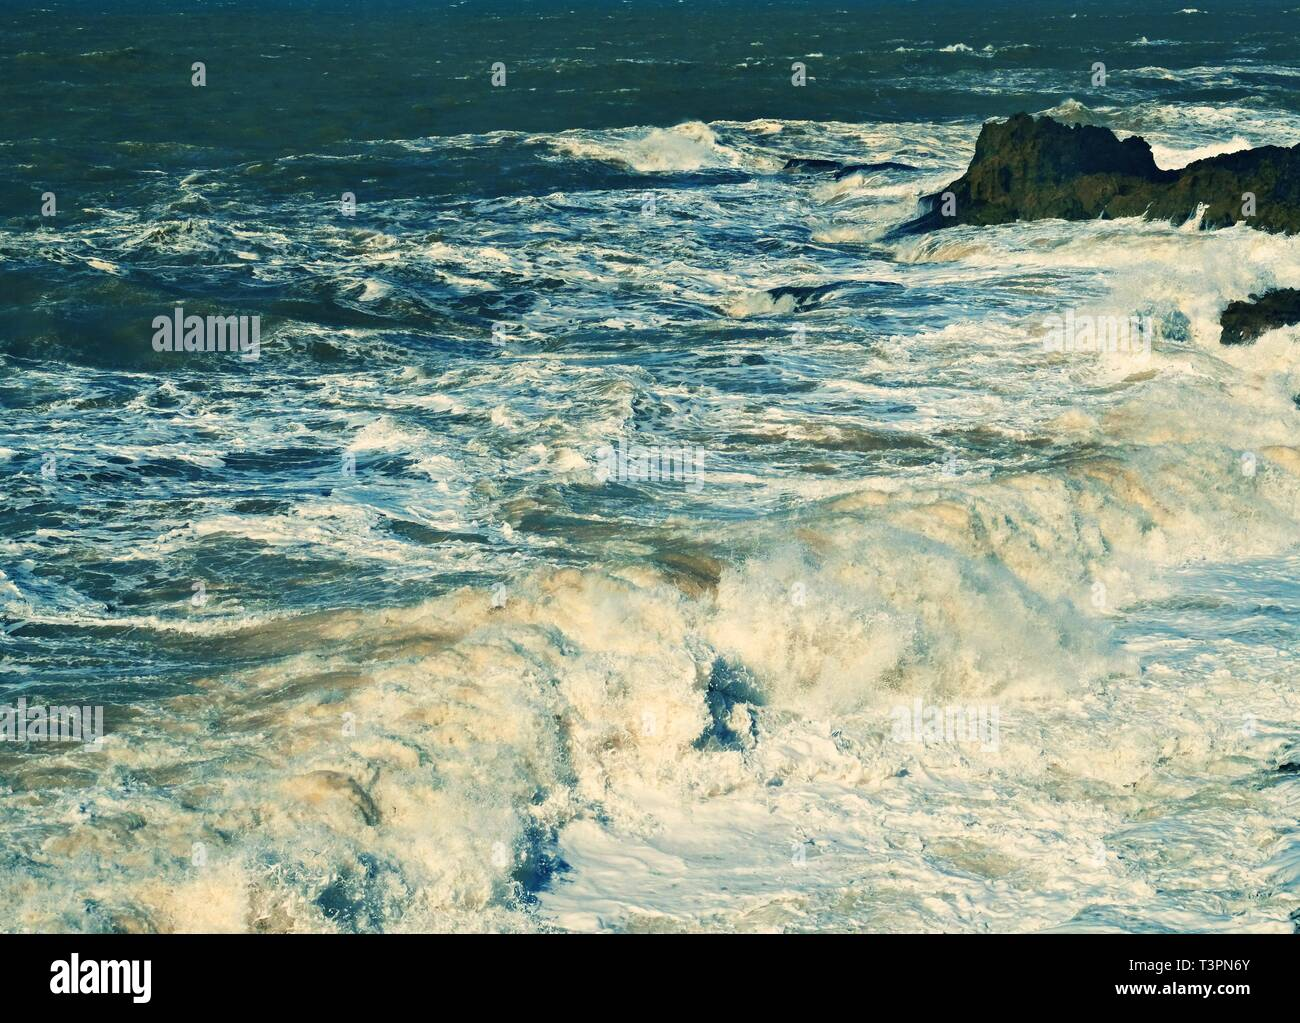 Stormy waves with splashes and foam on the ocean surface during a storm - Stock Image